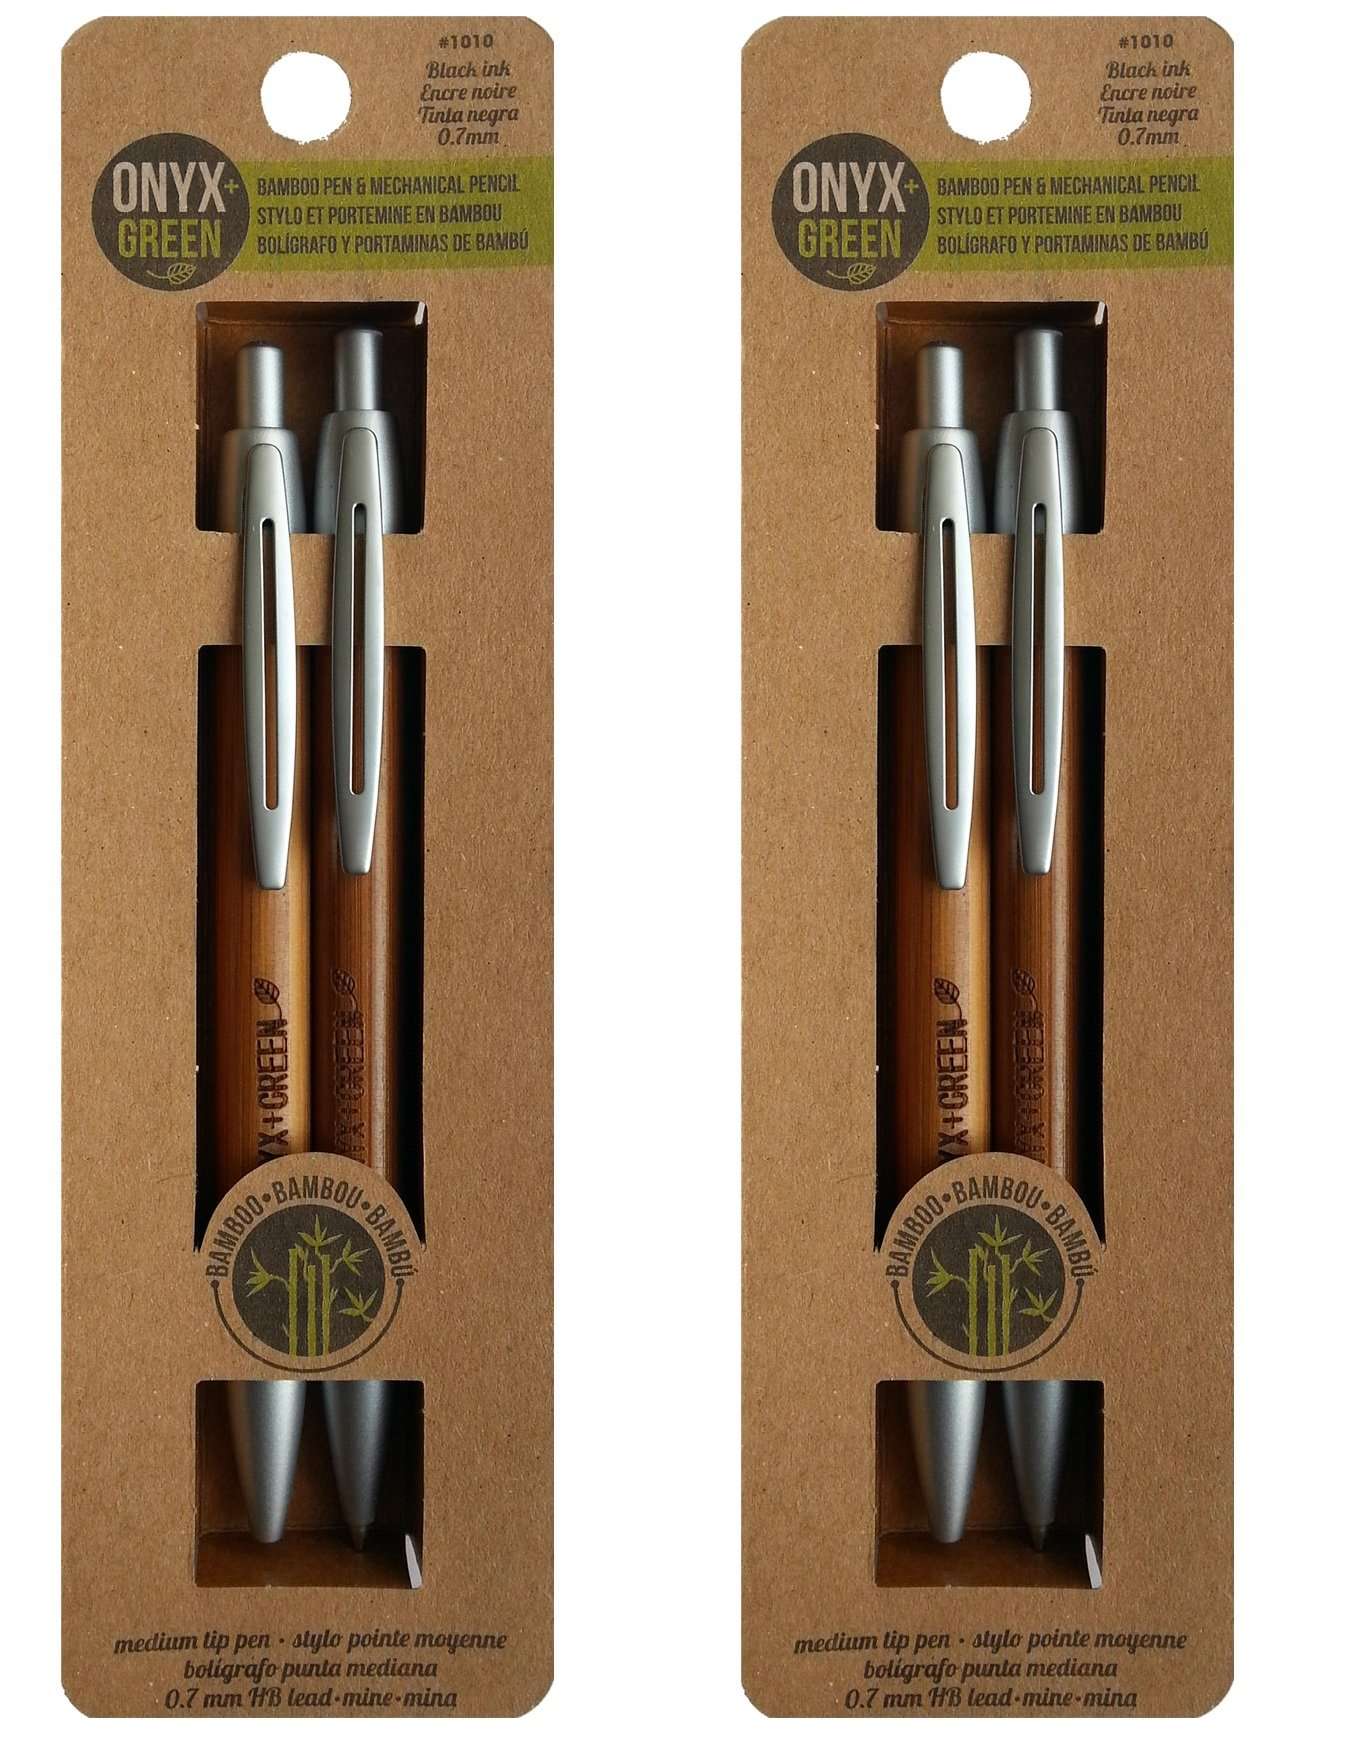 ONYX+GREEN Gel Twist Pen (Medium Tip - Black Ink) & Mechanical Lead Pencil 0.7mm Combo Set (2 Packs of Set), Eco-Friendly Pen/Pencil Made from Bamboo– for School Supplies, Office and Home